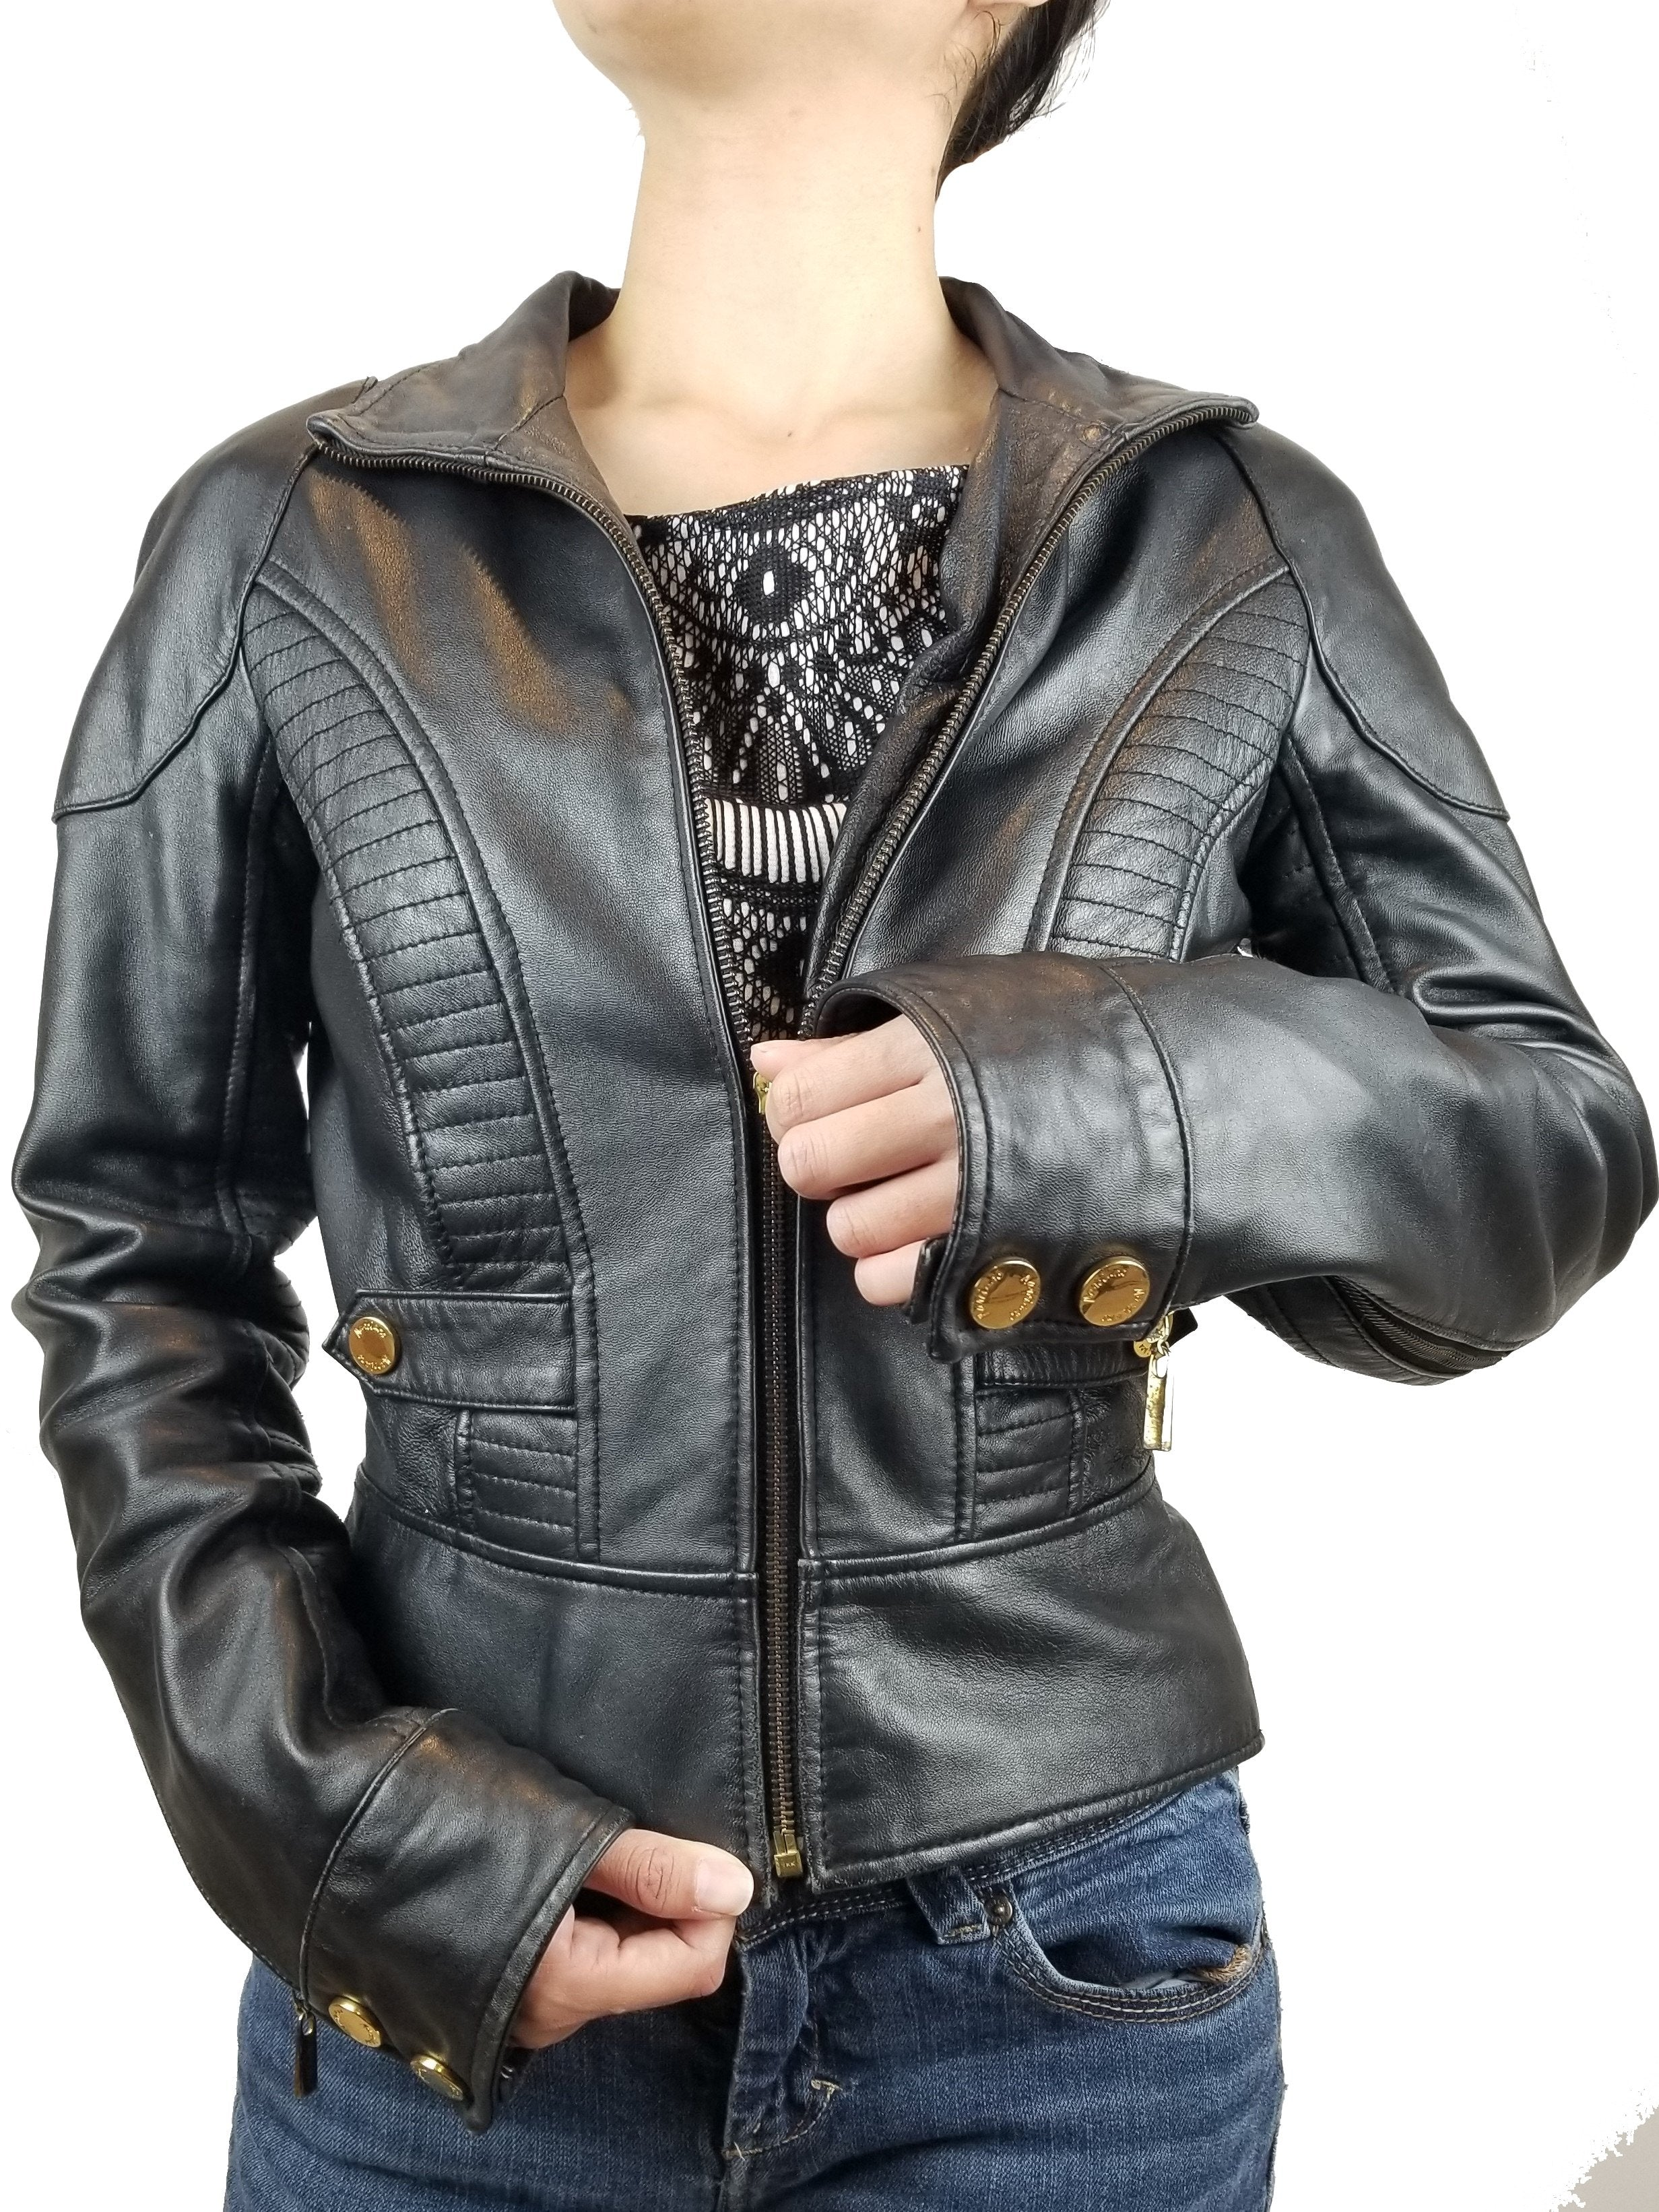 Marciano leather black jacket, Badass is the new feminine. Fits small. , Black, Shell: 100% Leather. Lining: 100% Polyester, women's Jackets & Coats, women's Black Jackets & Coats, Marciano women's Jackets & Coats, bomber black jacket, women's leather black jacket, women's leather designer jacket, fashion, classic leather moto women's jacket